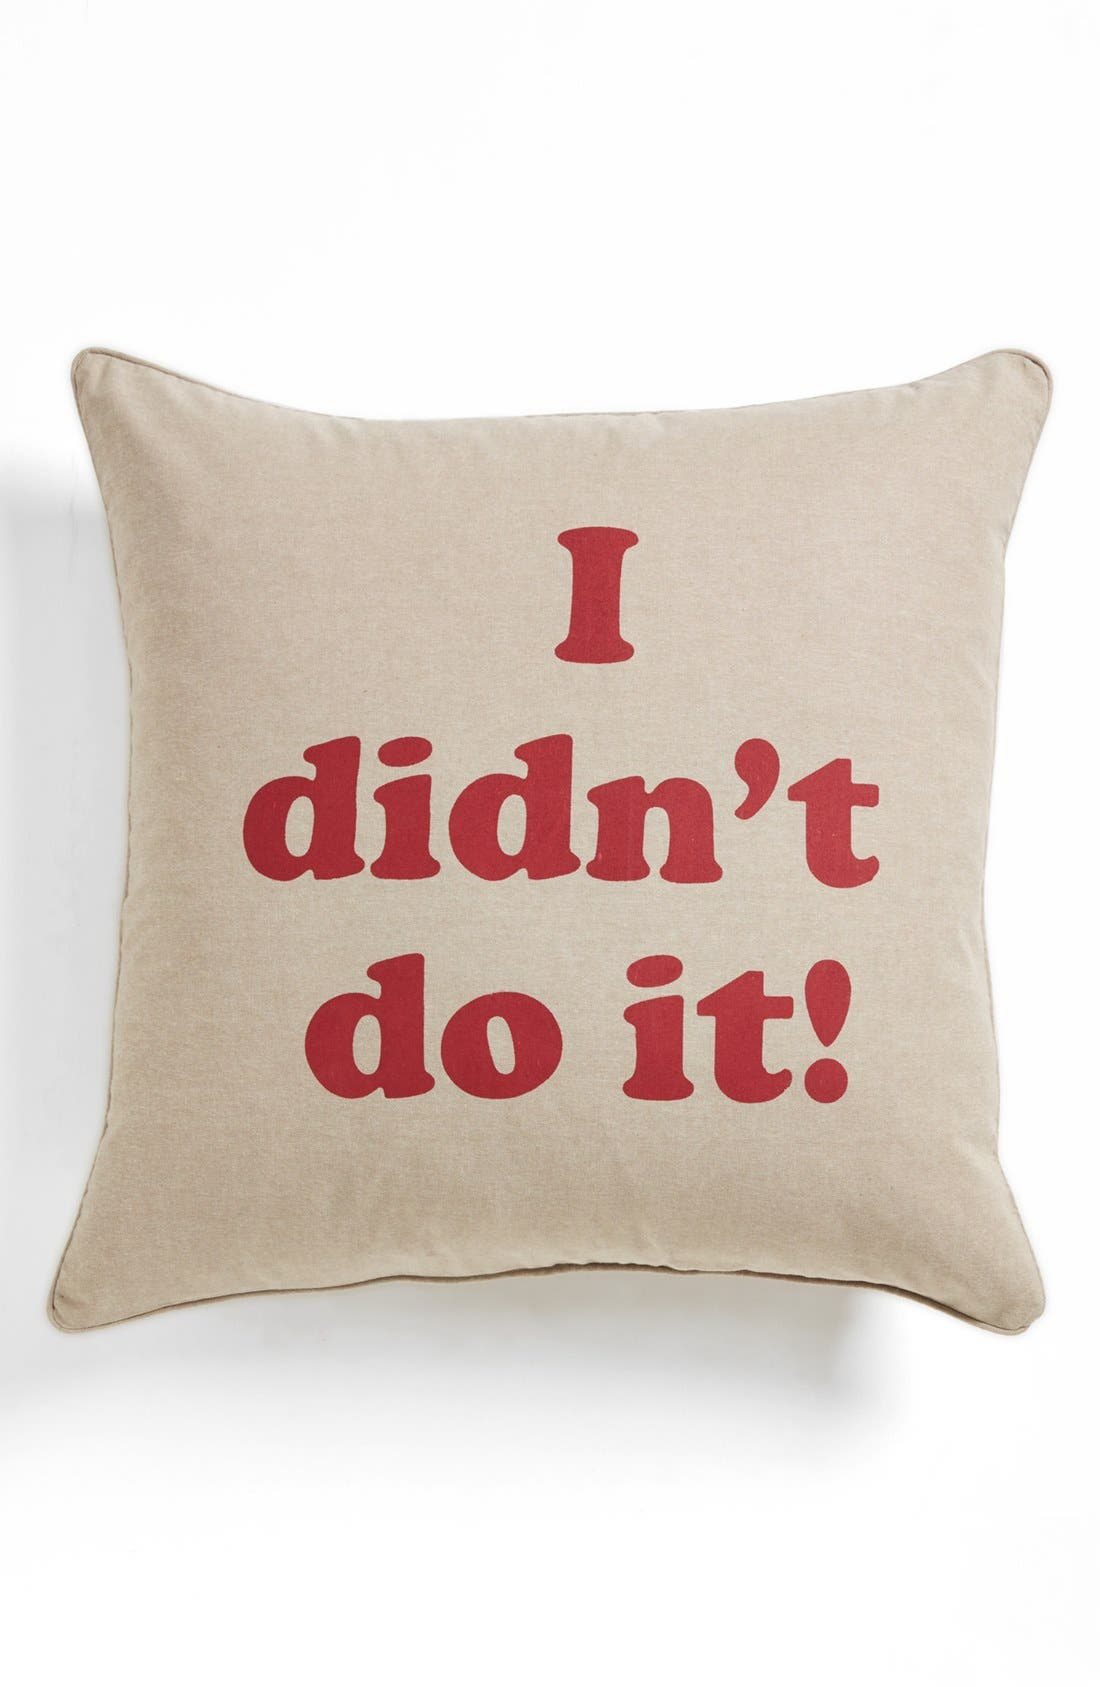 Alternate Image 1 Selected - Levtex 'I Didn't Do It' Pillow